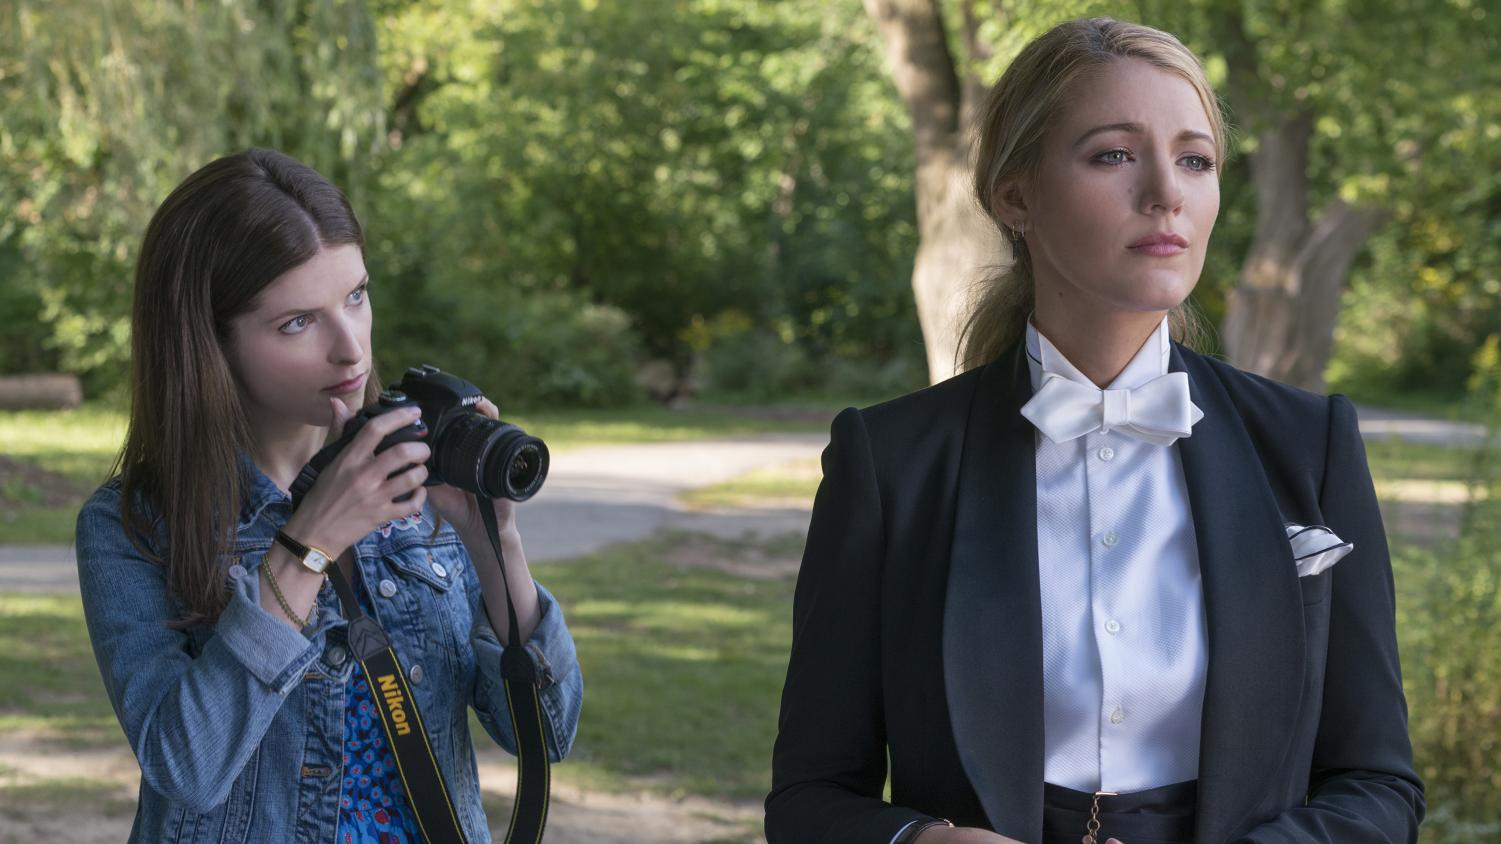 Anna Kendrick as Stephanie and Blake Lively as Emily in A Simple Favor.